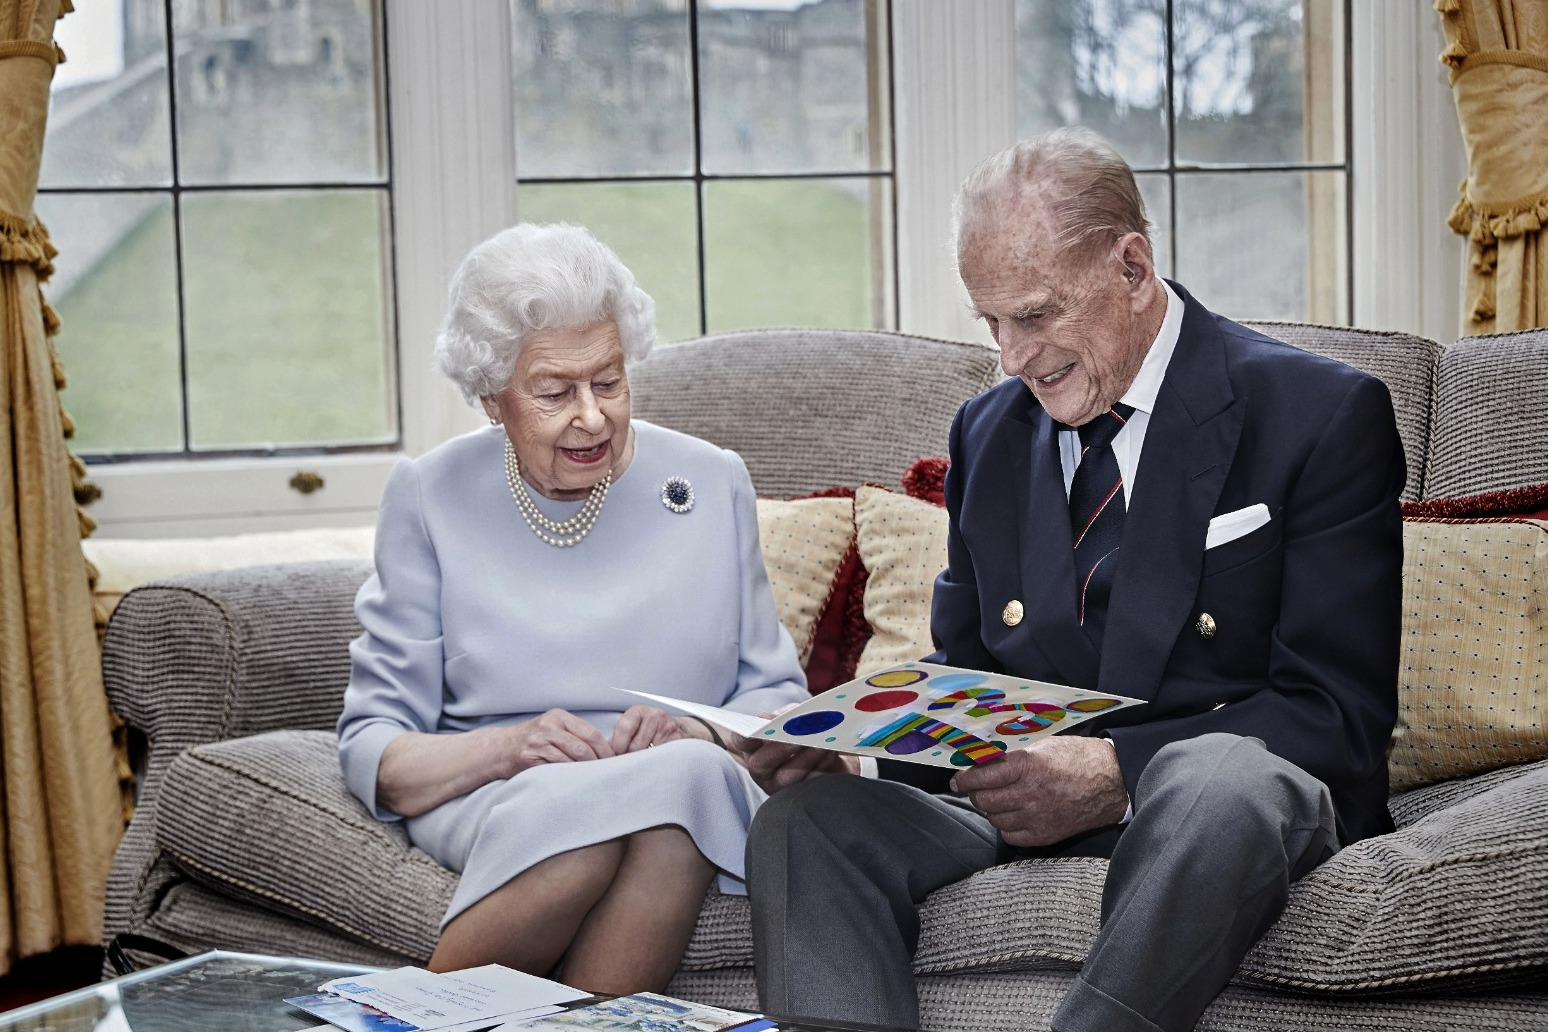 Queen and Duke of Edinburgh mark wedding anniversary with new photo